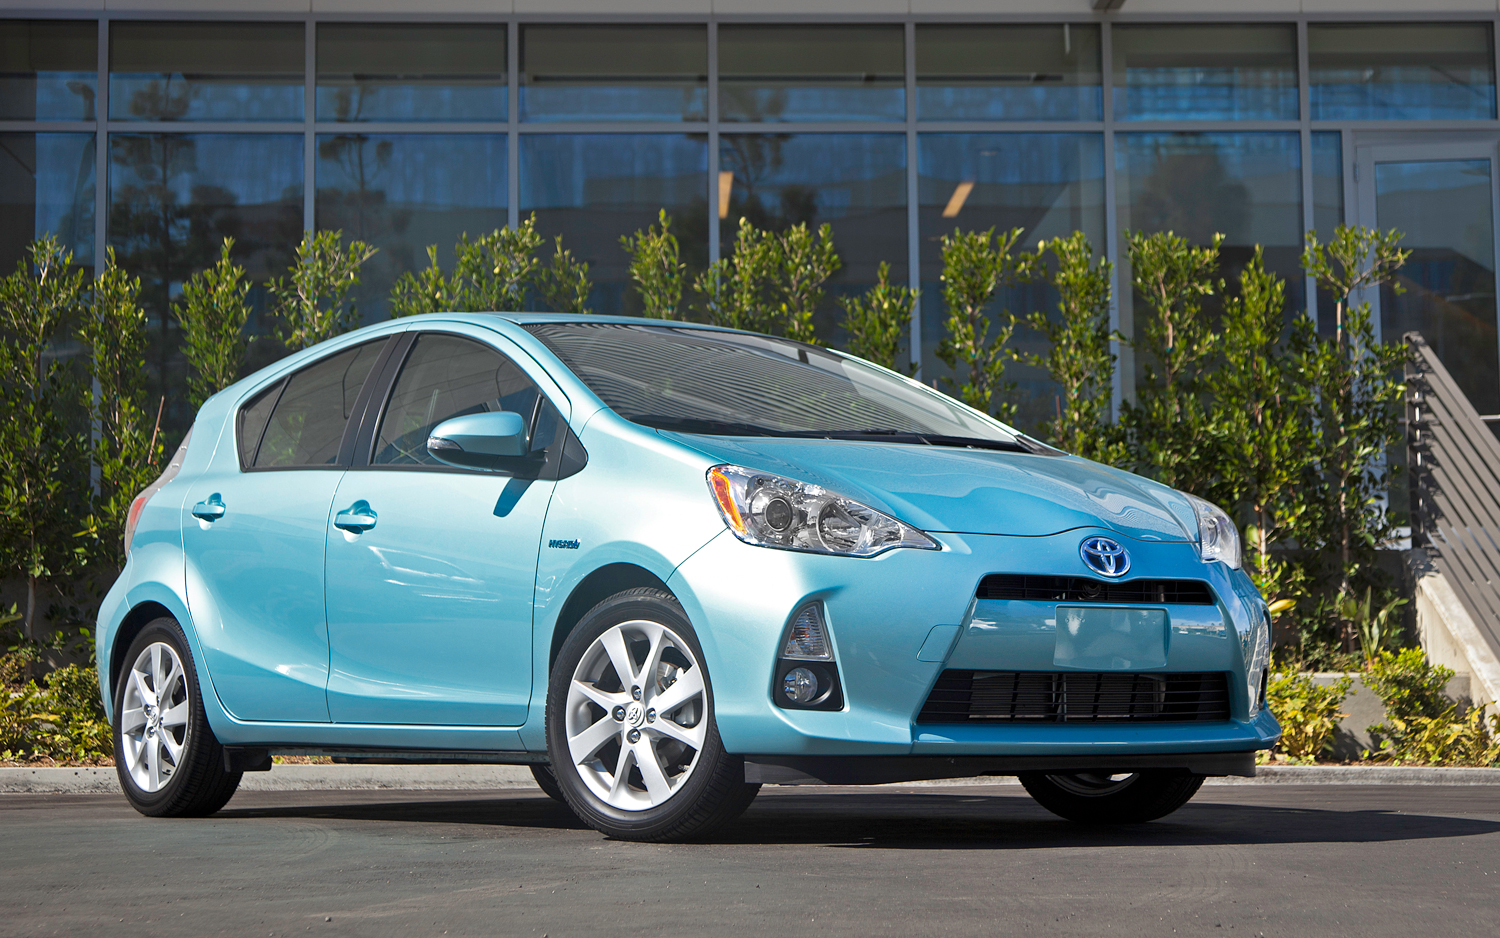 design serving exterior view sacramento and dealer c of jose toyota livermore in prius san oakland